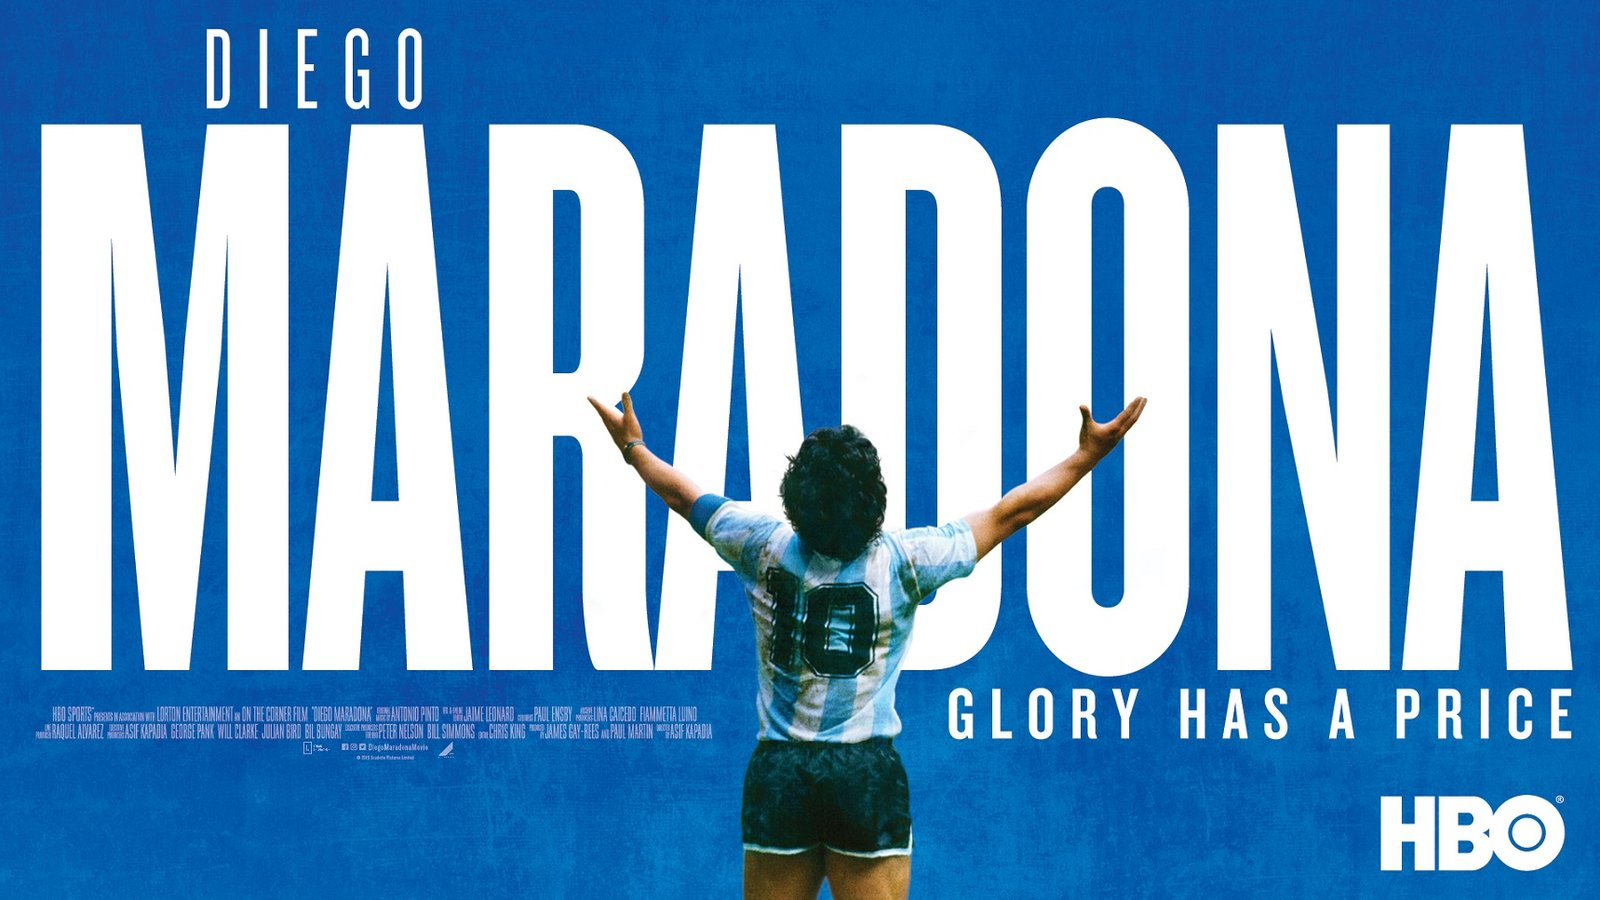 Diego Maradona - The Extraordinary Story of an Argentinean Soccer Legend